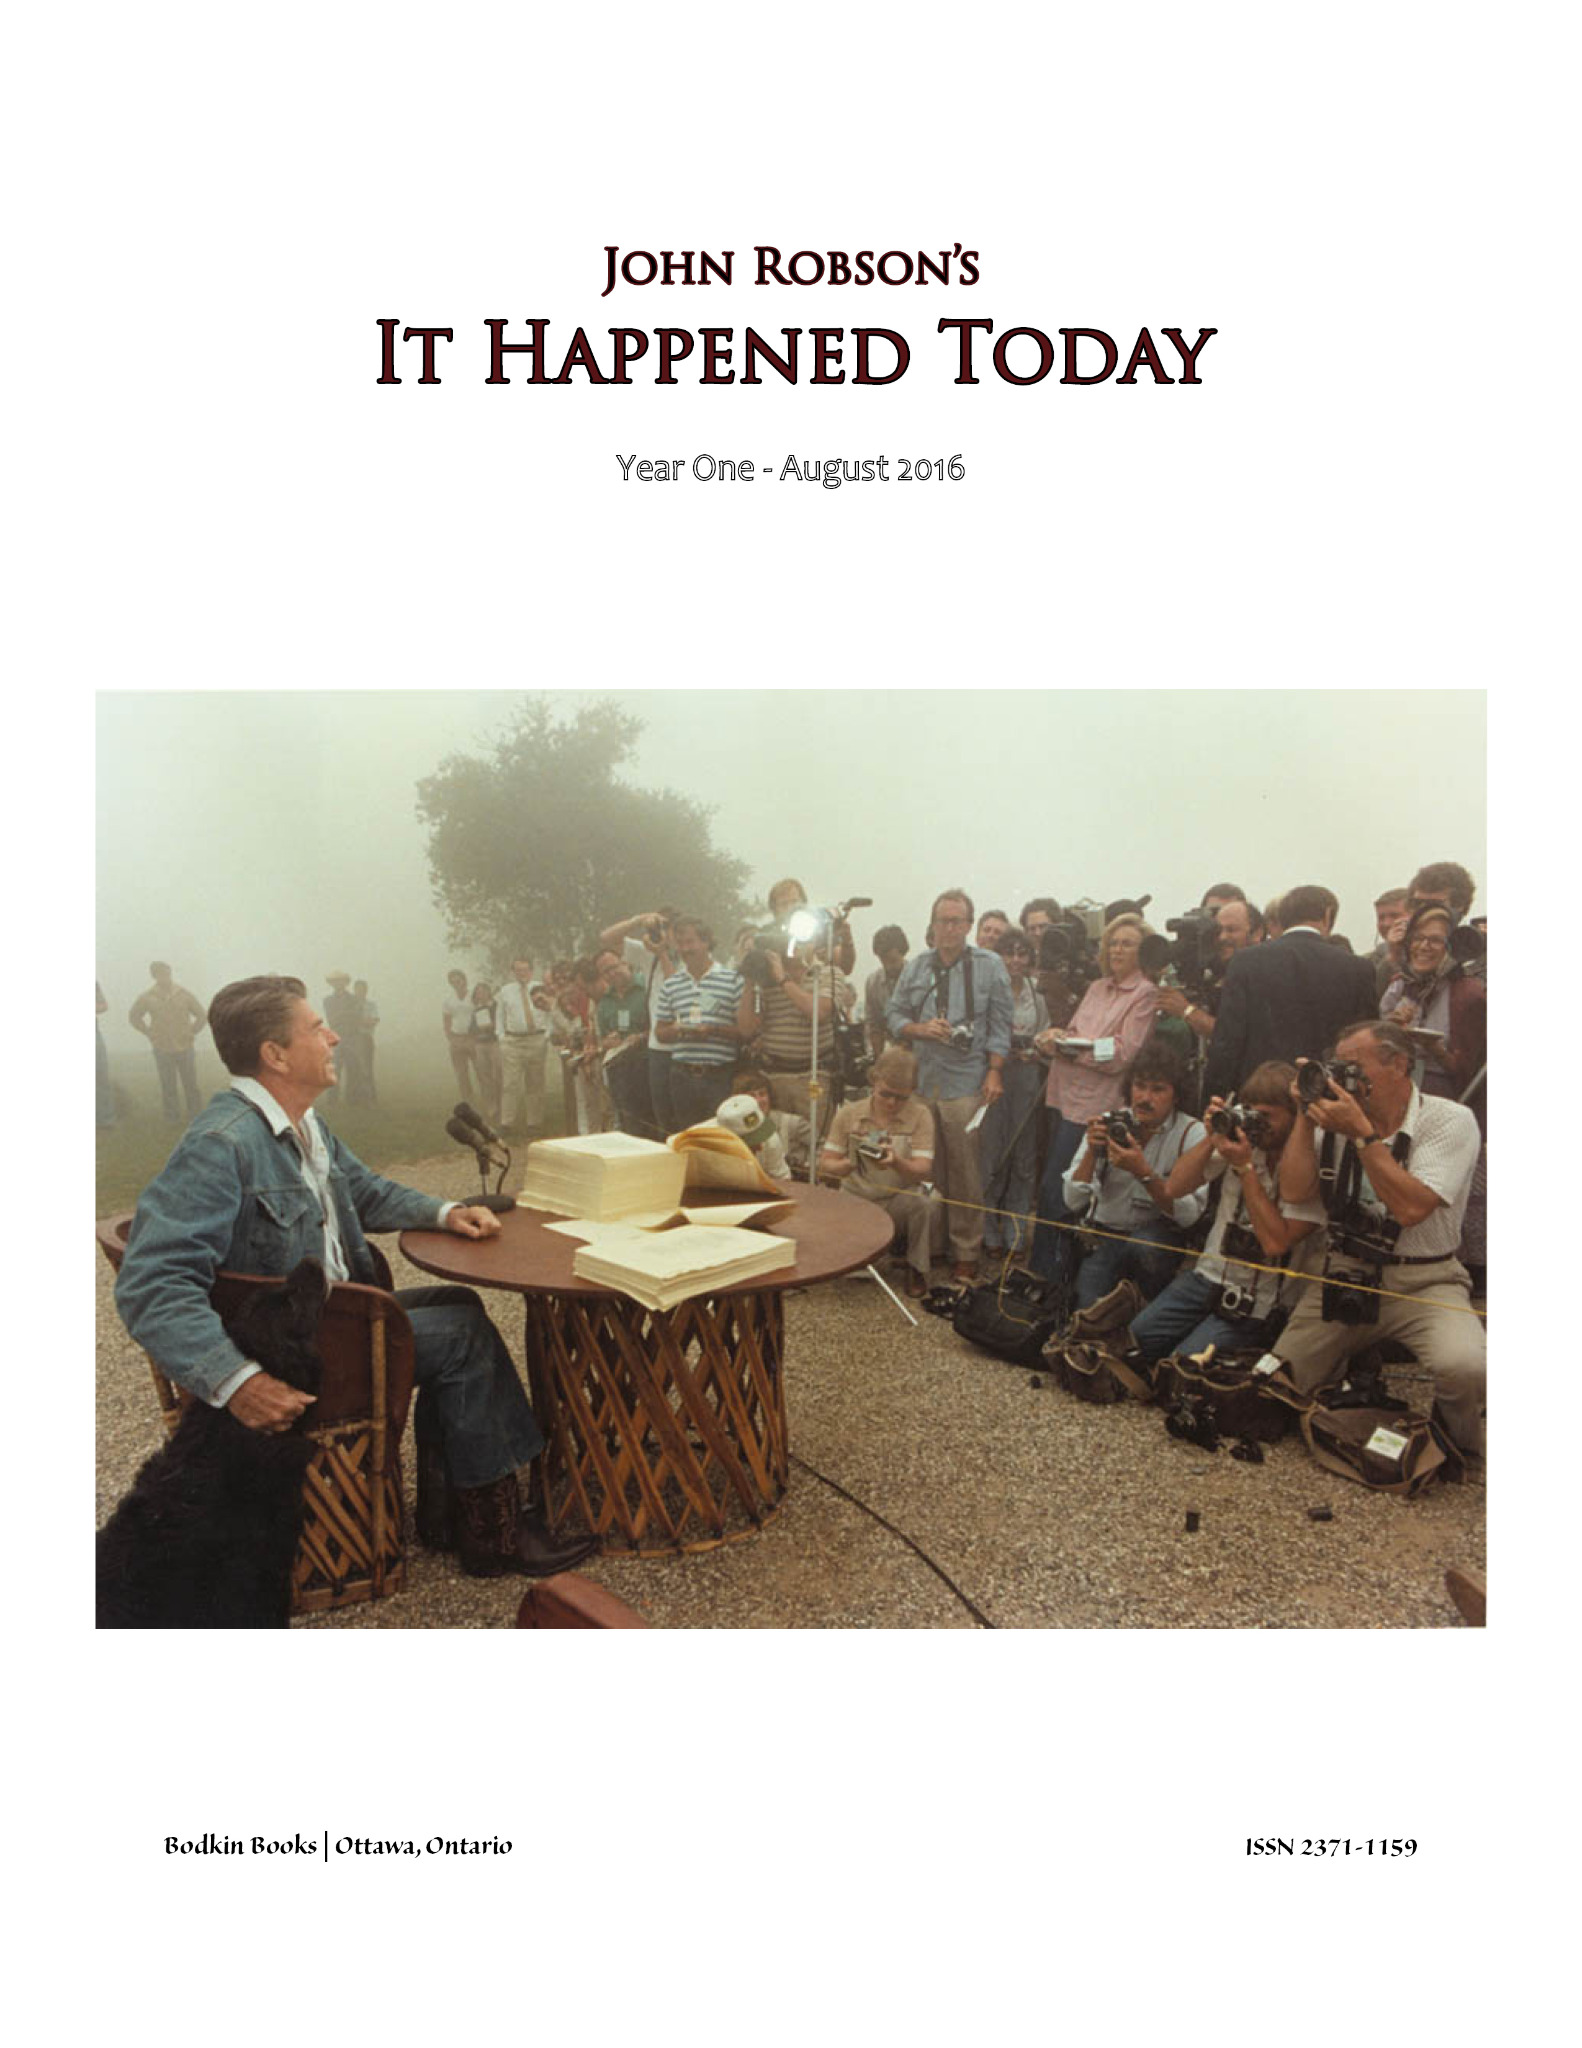 John Robson's It Happened Today - Year One - August